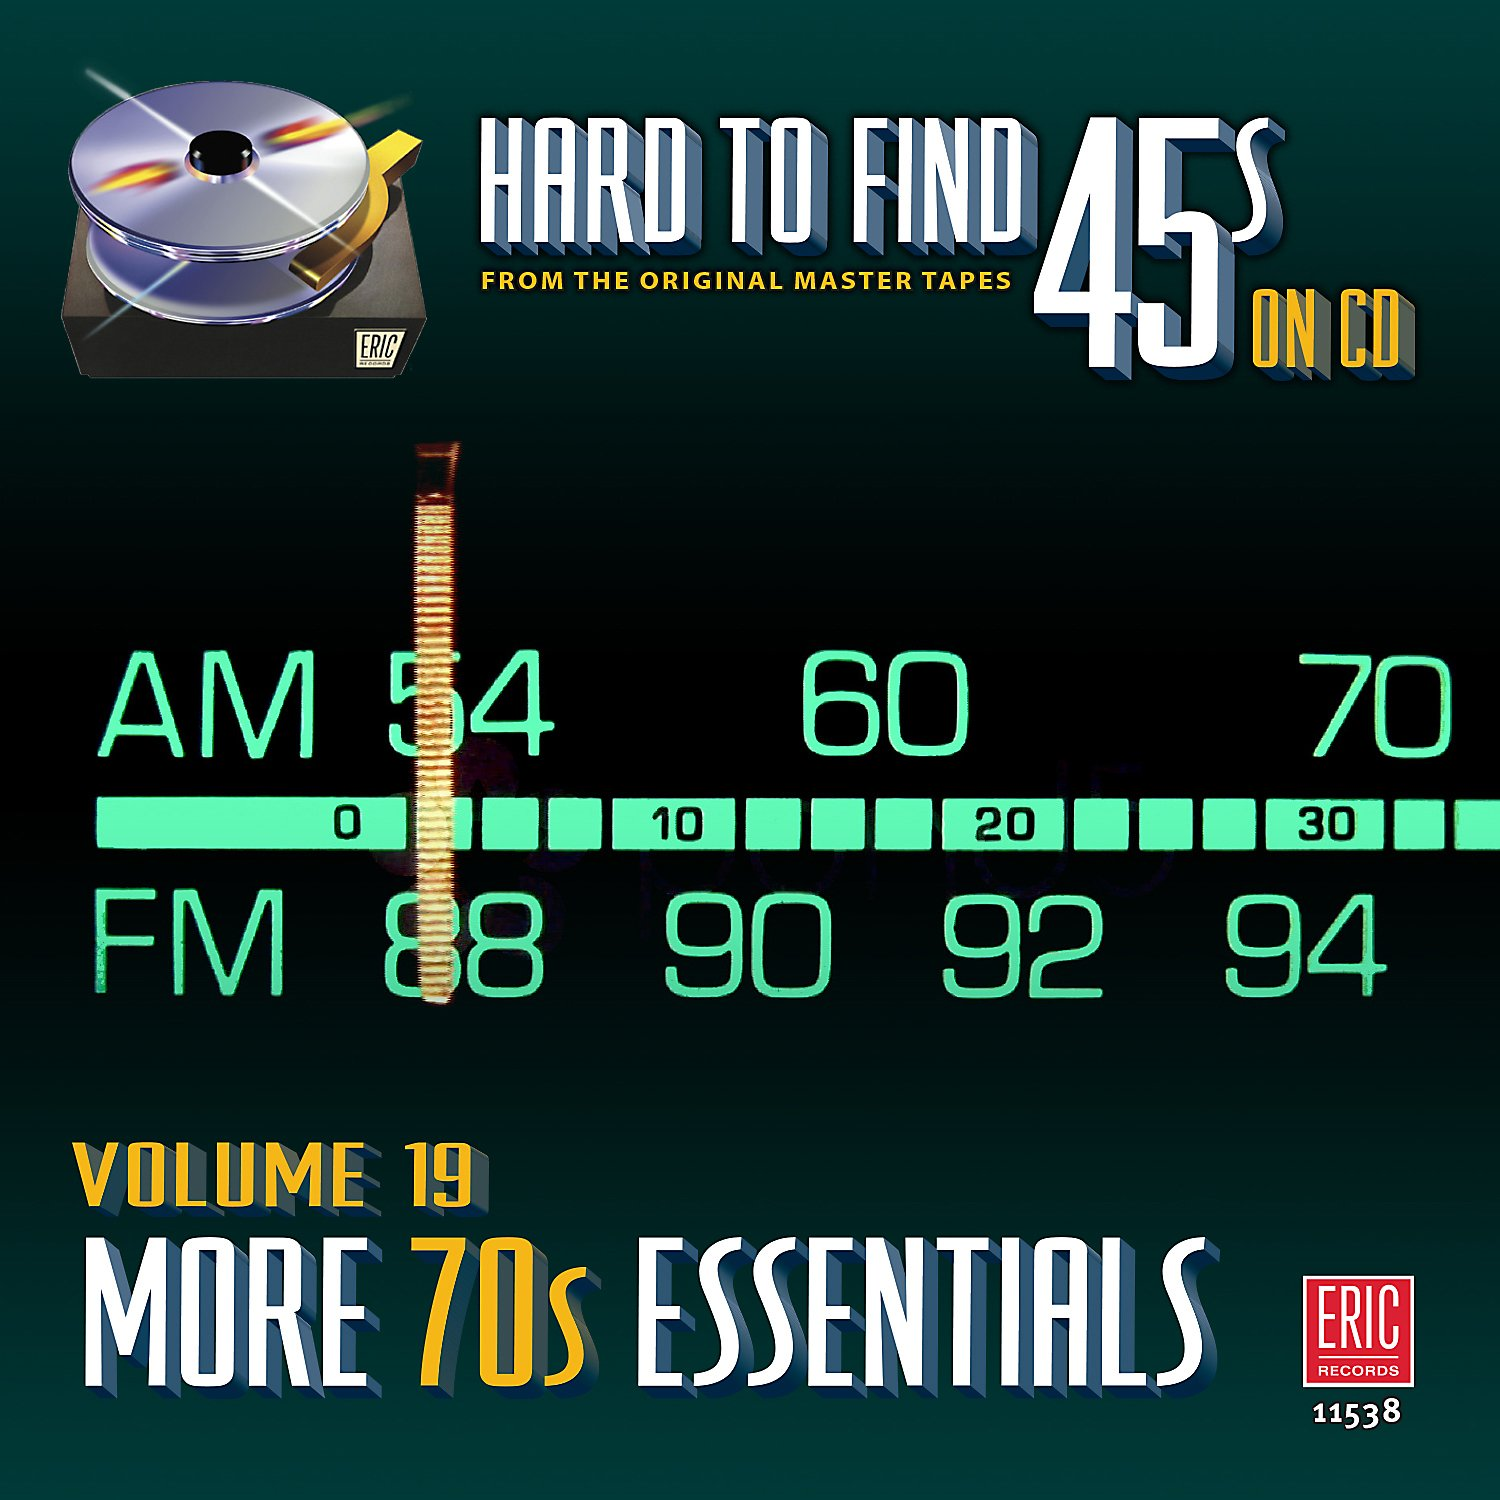 Hard To Find 45s On Cd 19 - More 70's / Various by Eric